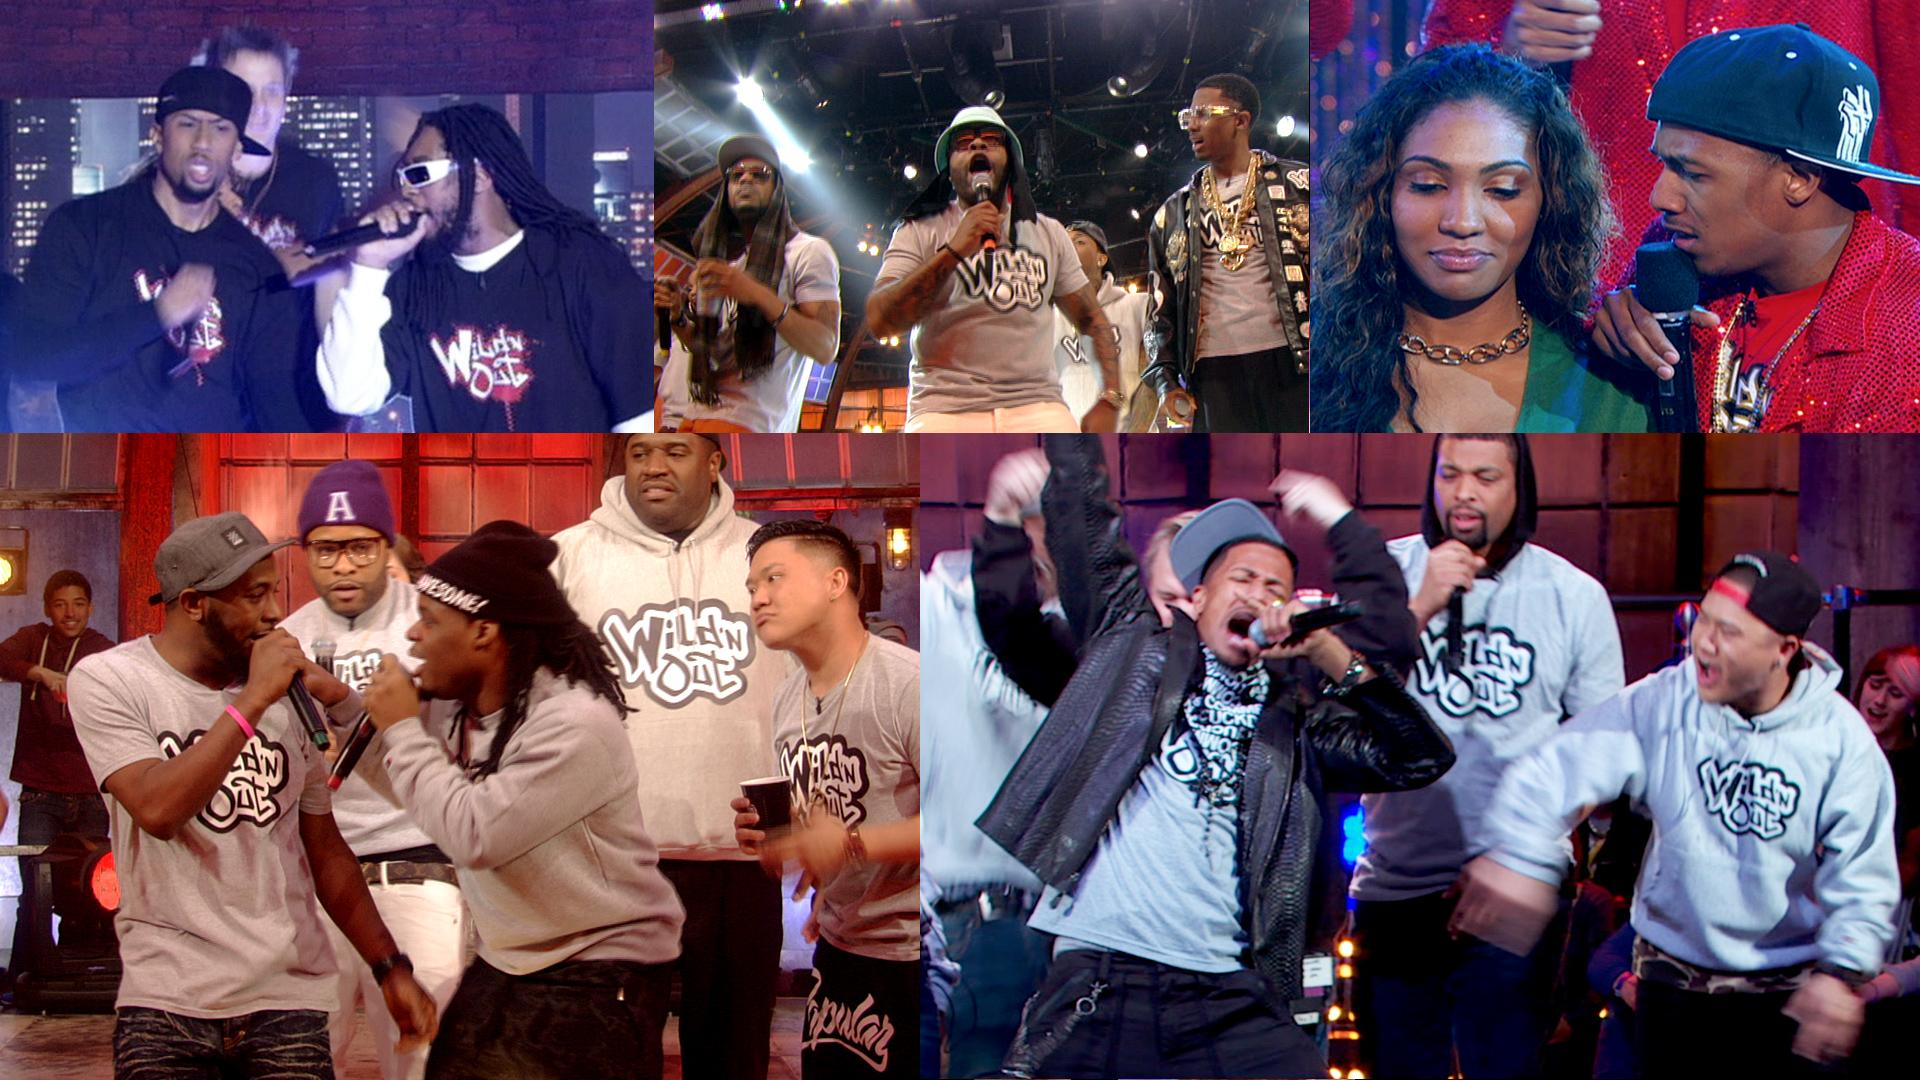 RT @MTV2: What's your favorite WNO Song? Vote here: http://t.co/RMrZuwsJwg Voting closes 5/5 12:59p EST #BestOfWNO #WildNOut http://t.co/wq…